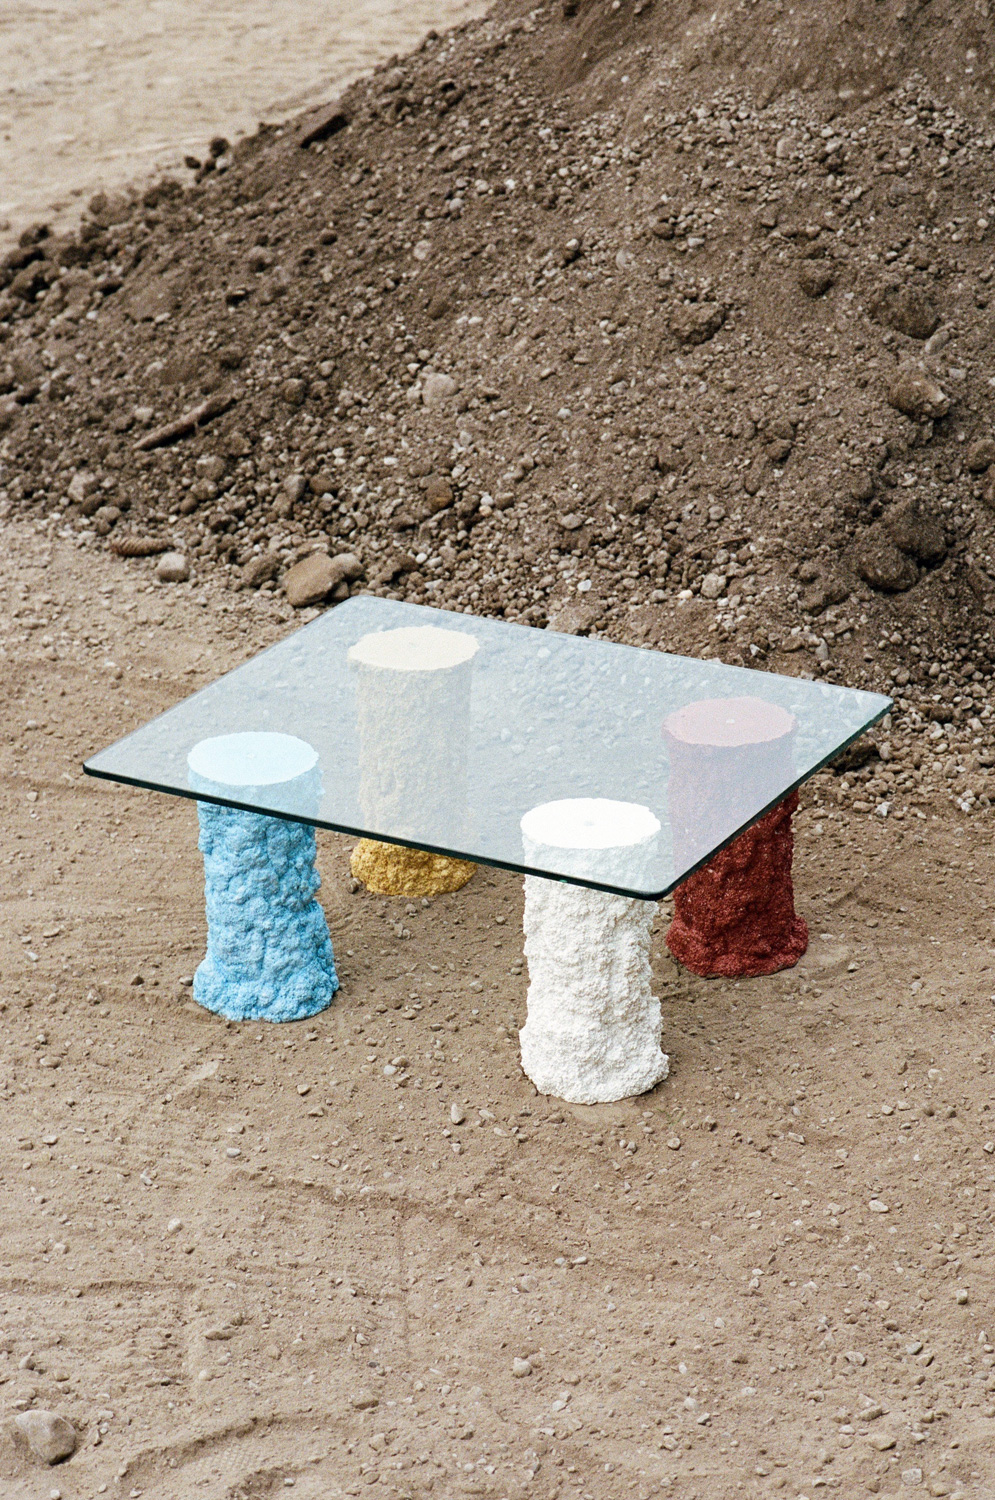 say hi to_ Susan for Susan Furniture and Object Design Duo from Toronto Table